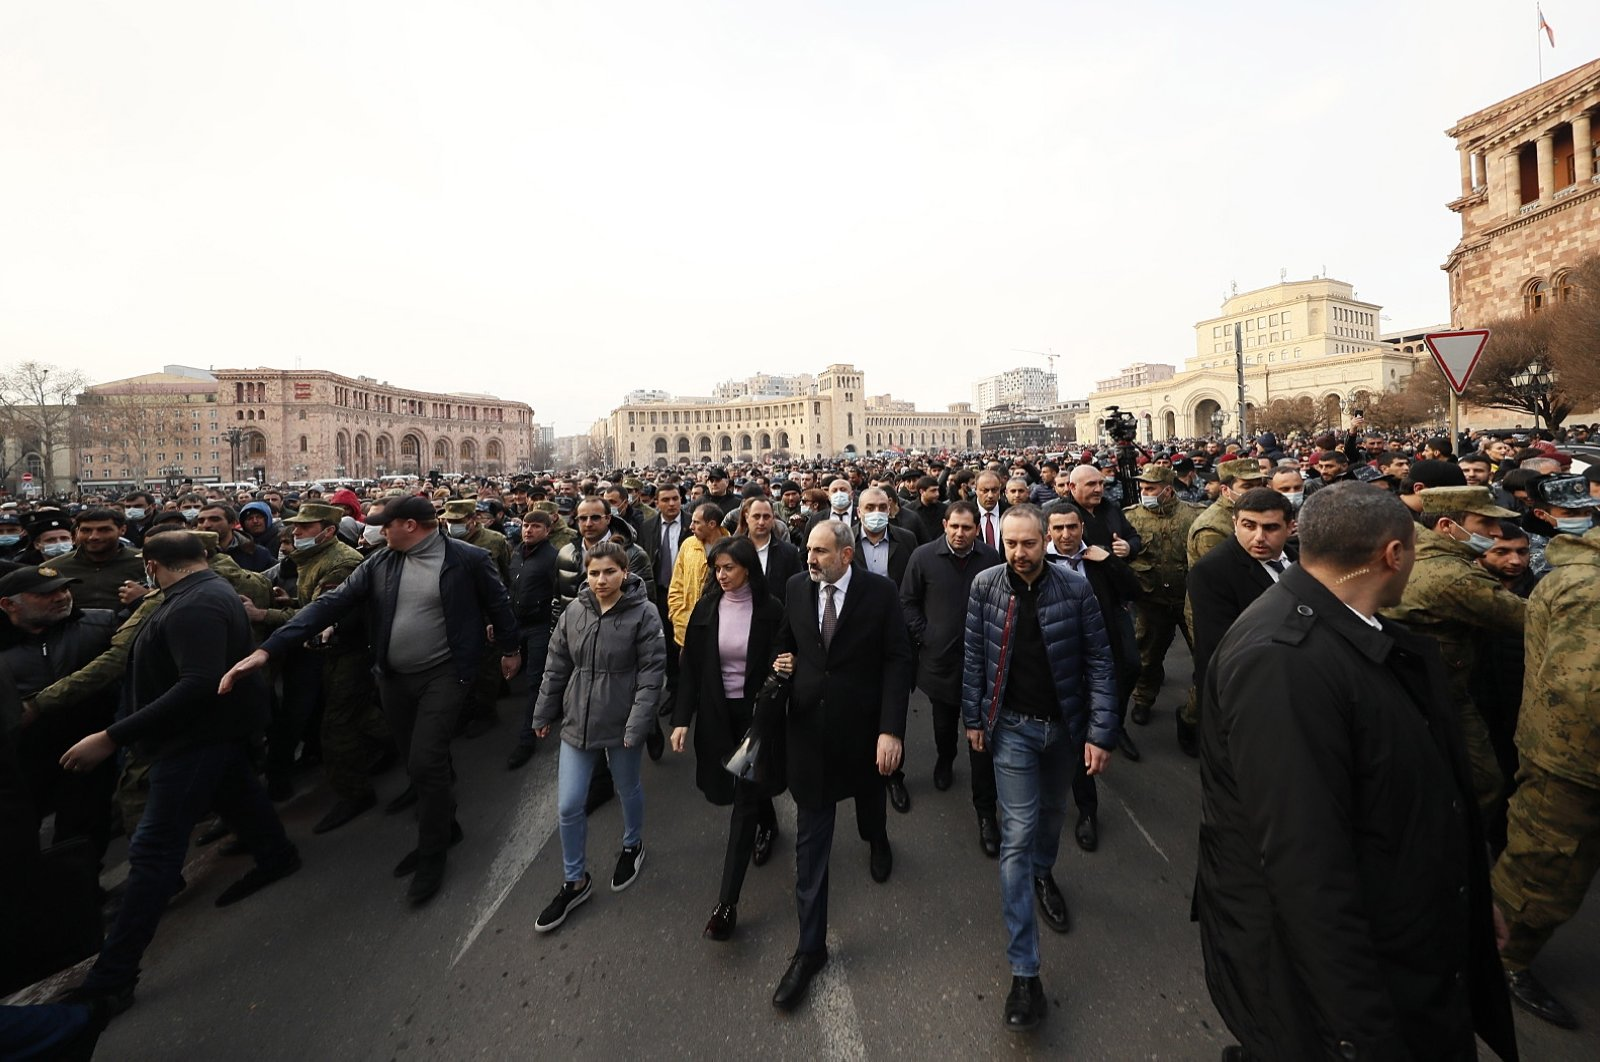 Armenian Prime Minister Nikol Pashinian (C) walks with his supporters to protest the coup attempt, Yerevan, Armenia, Feb. 25, 2021. (EPA Photo)